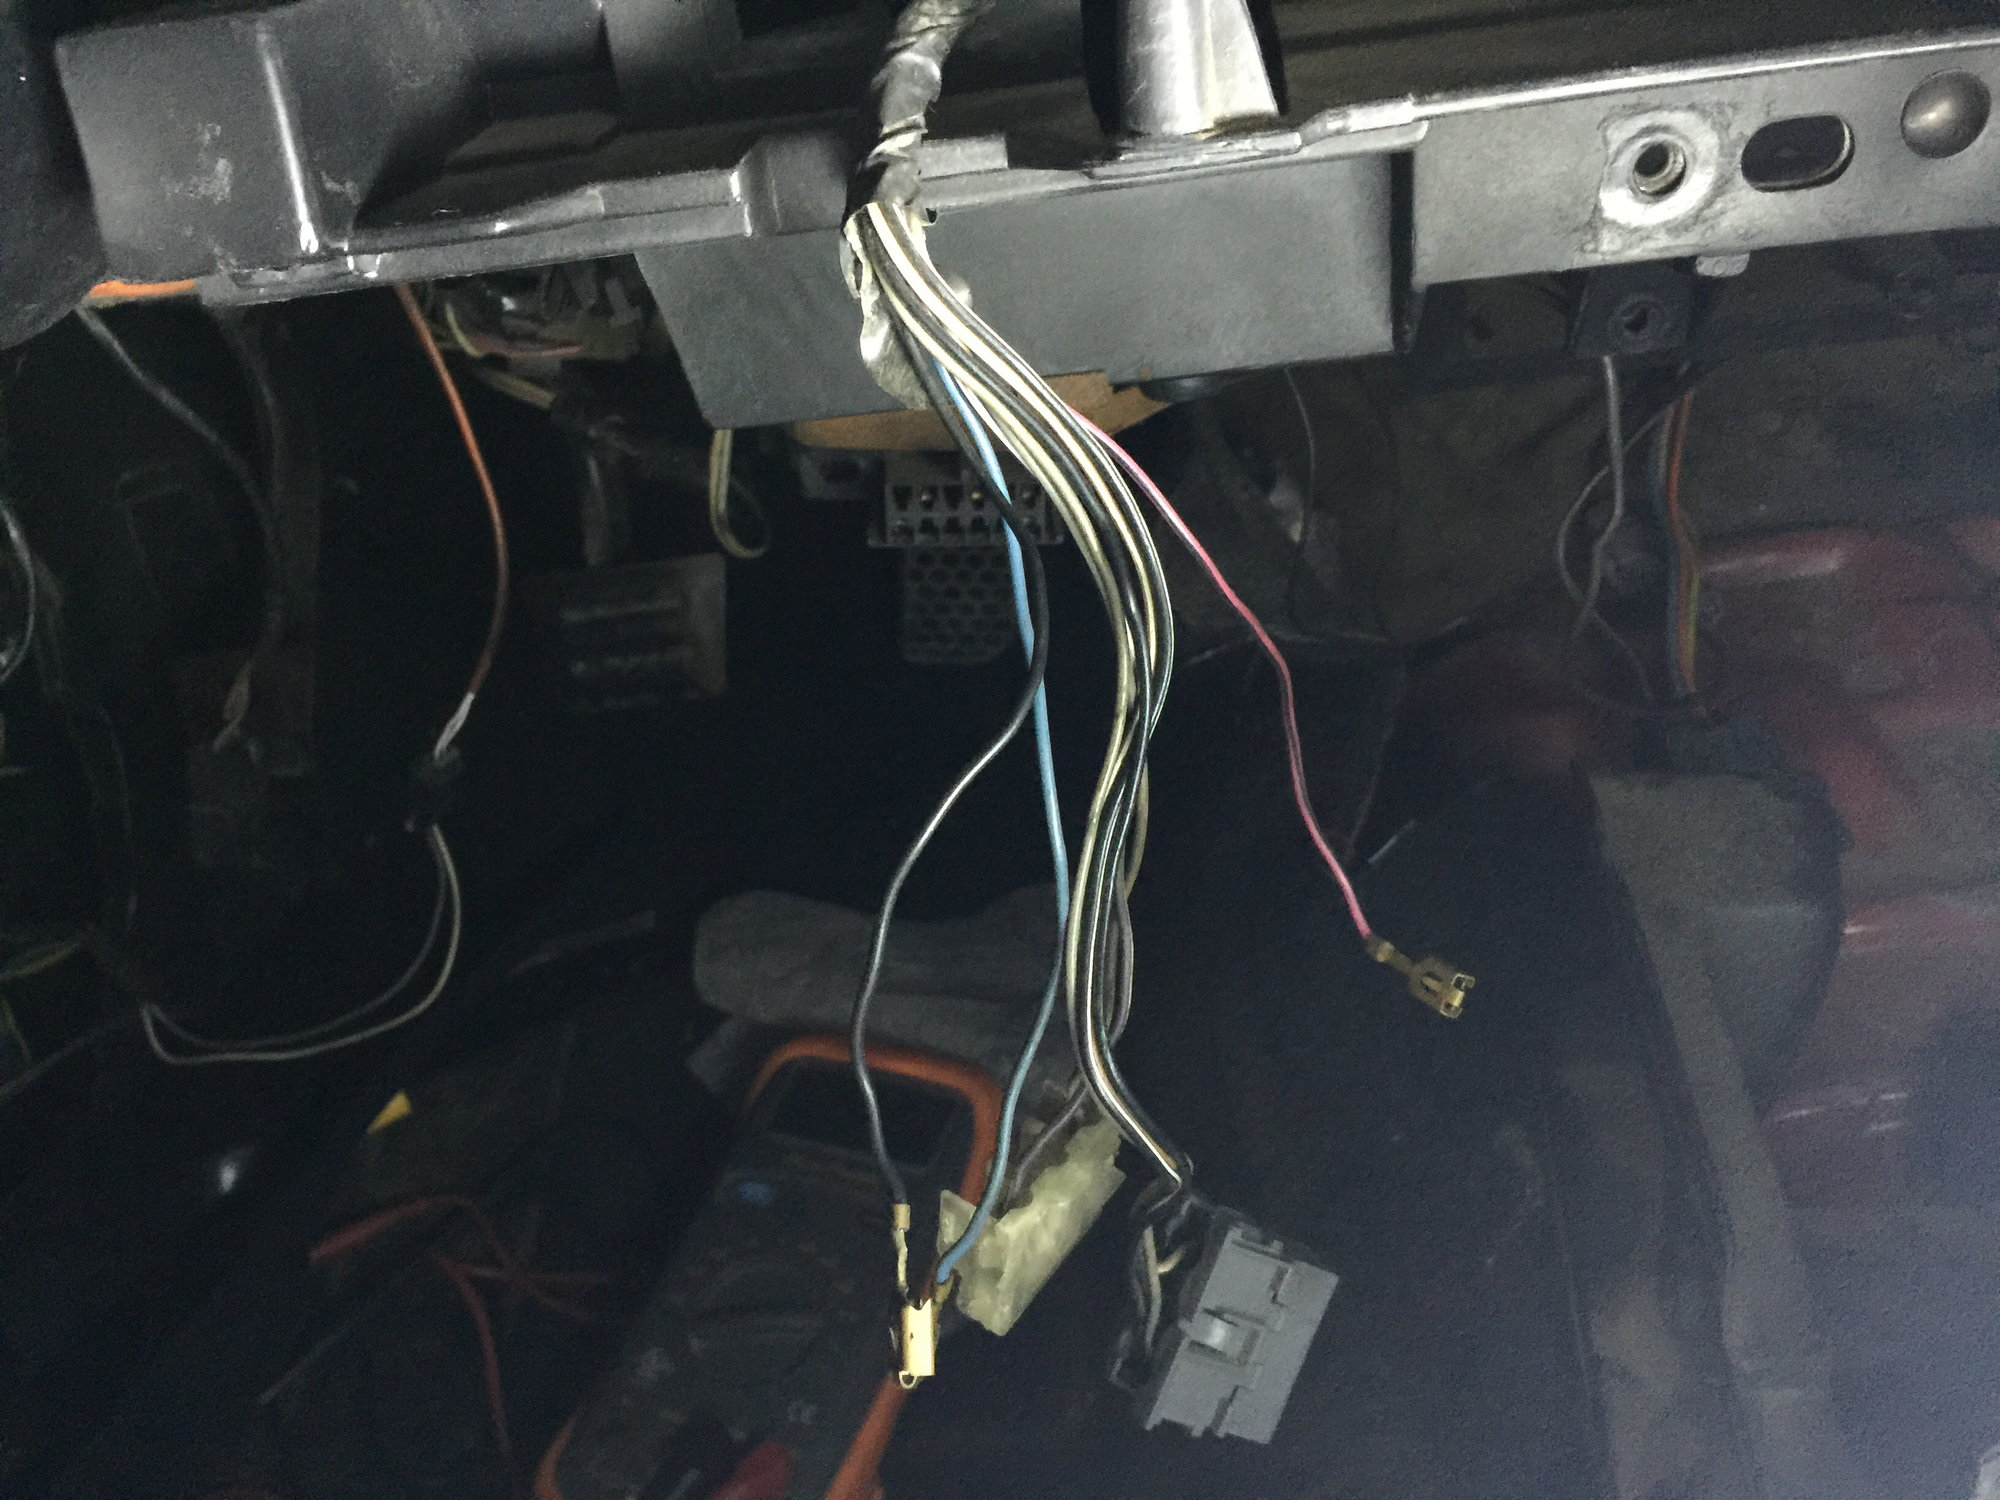 Unplugged harness under dash? - Third Generation F- Message Boards on battery harness, engine harness, nakamichi harness, electrical harness, suspension harness, maxi-seal harness, radio harness, safety harness, cable harness, alpine stereo harness, pony harness, dog harness, fall protection harness, pet harness, amp bypass harness, oxygen sensor extension harness, obd0 to obd1 conversion harness,